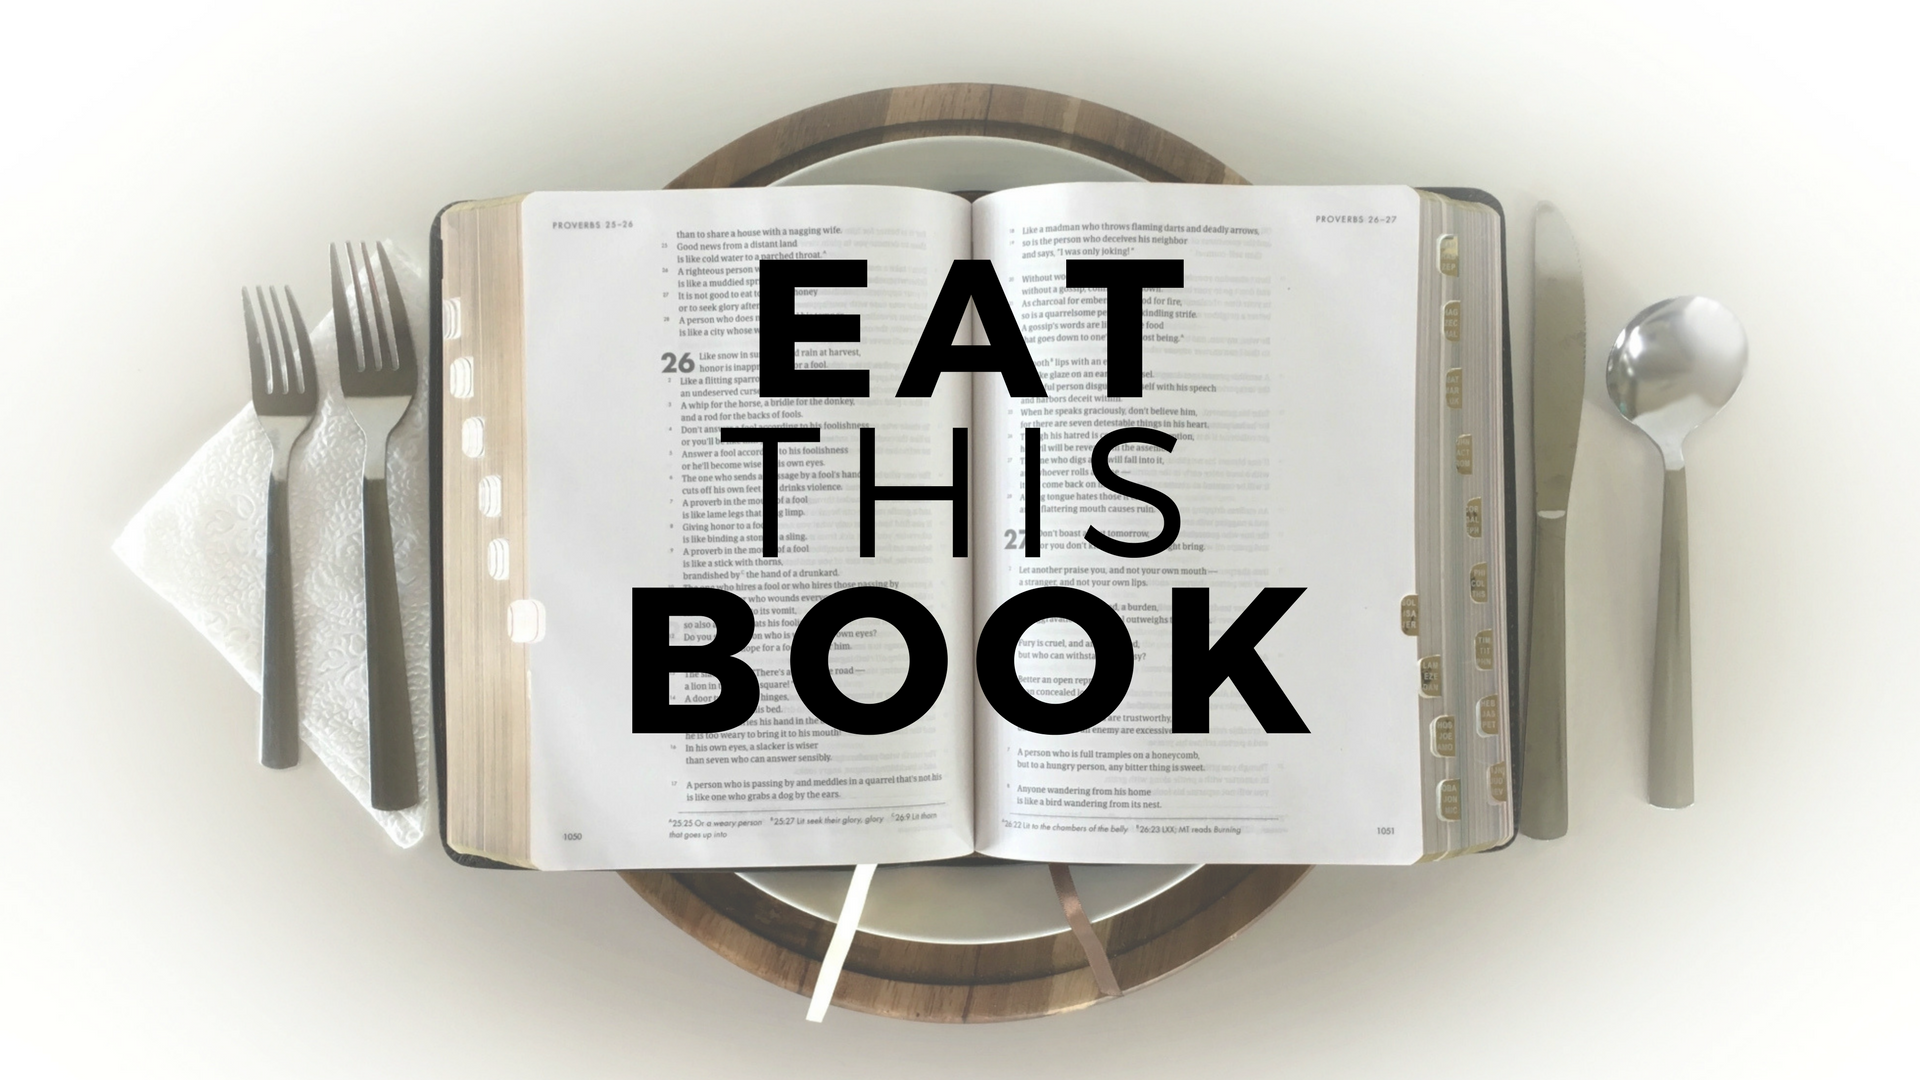 Join us this Sunday as we continue our series, Eat This Book!   As a church, we're using the ReadScripture app ( readscripture.org ) to EAT THIS BOOK. Are you following? You can download the app at the address listed or visit the blog on our website  missiosj.com/blog .